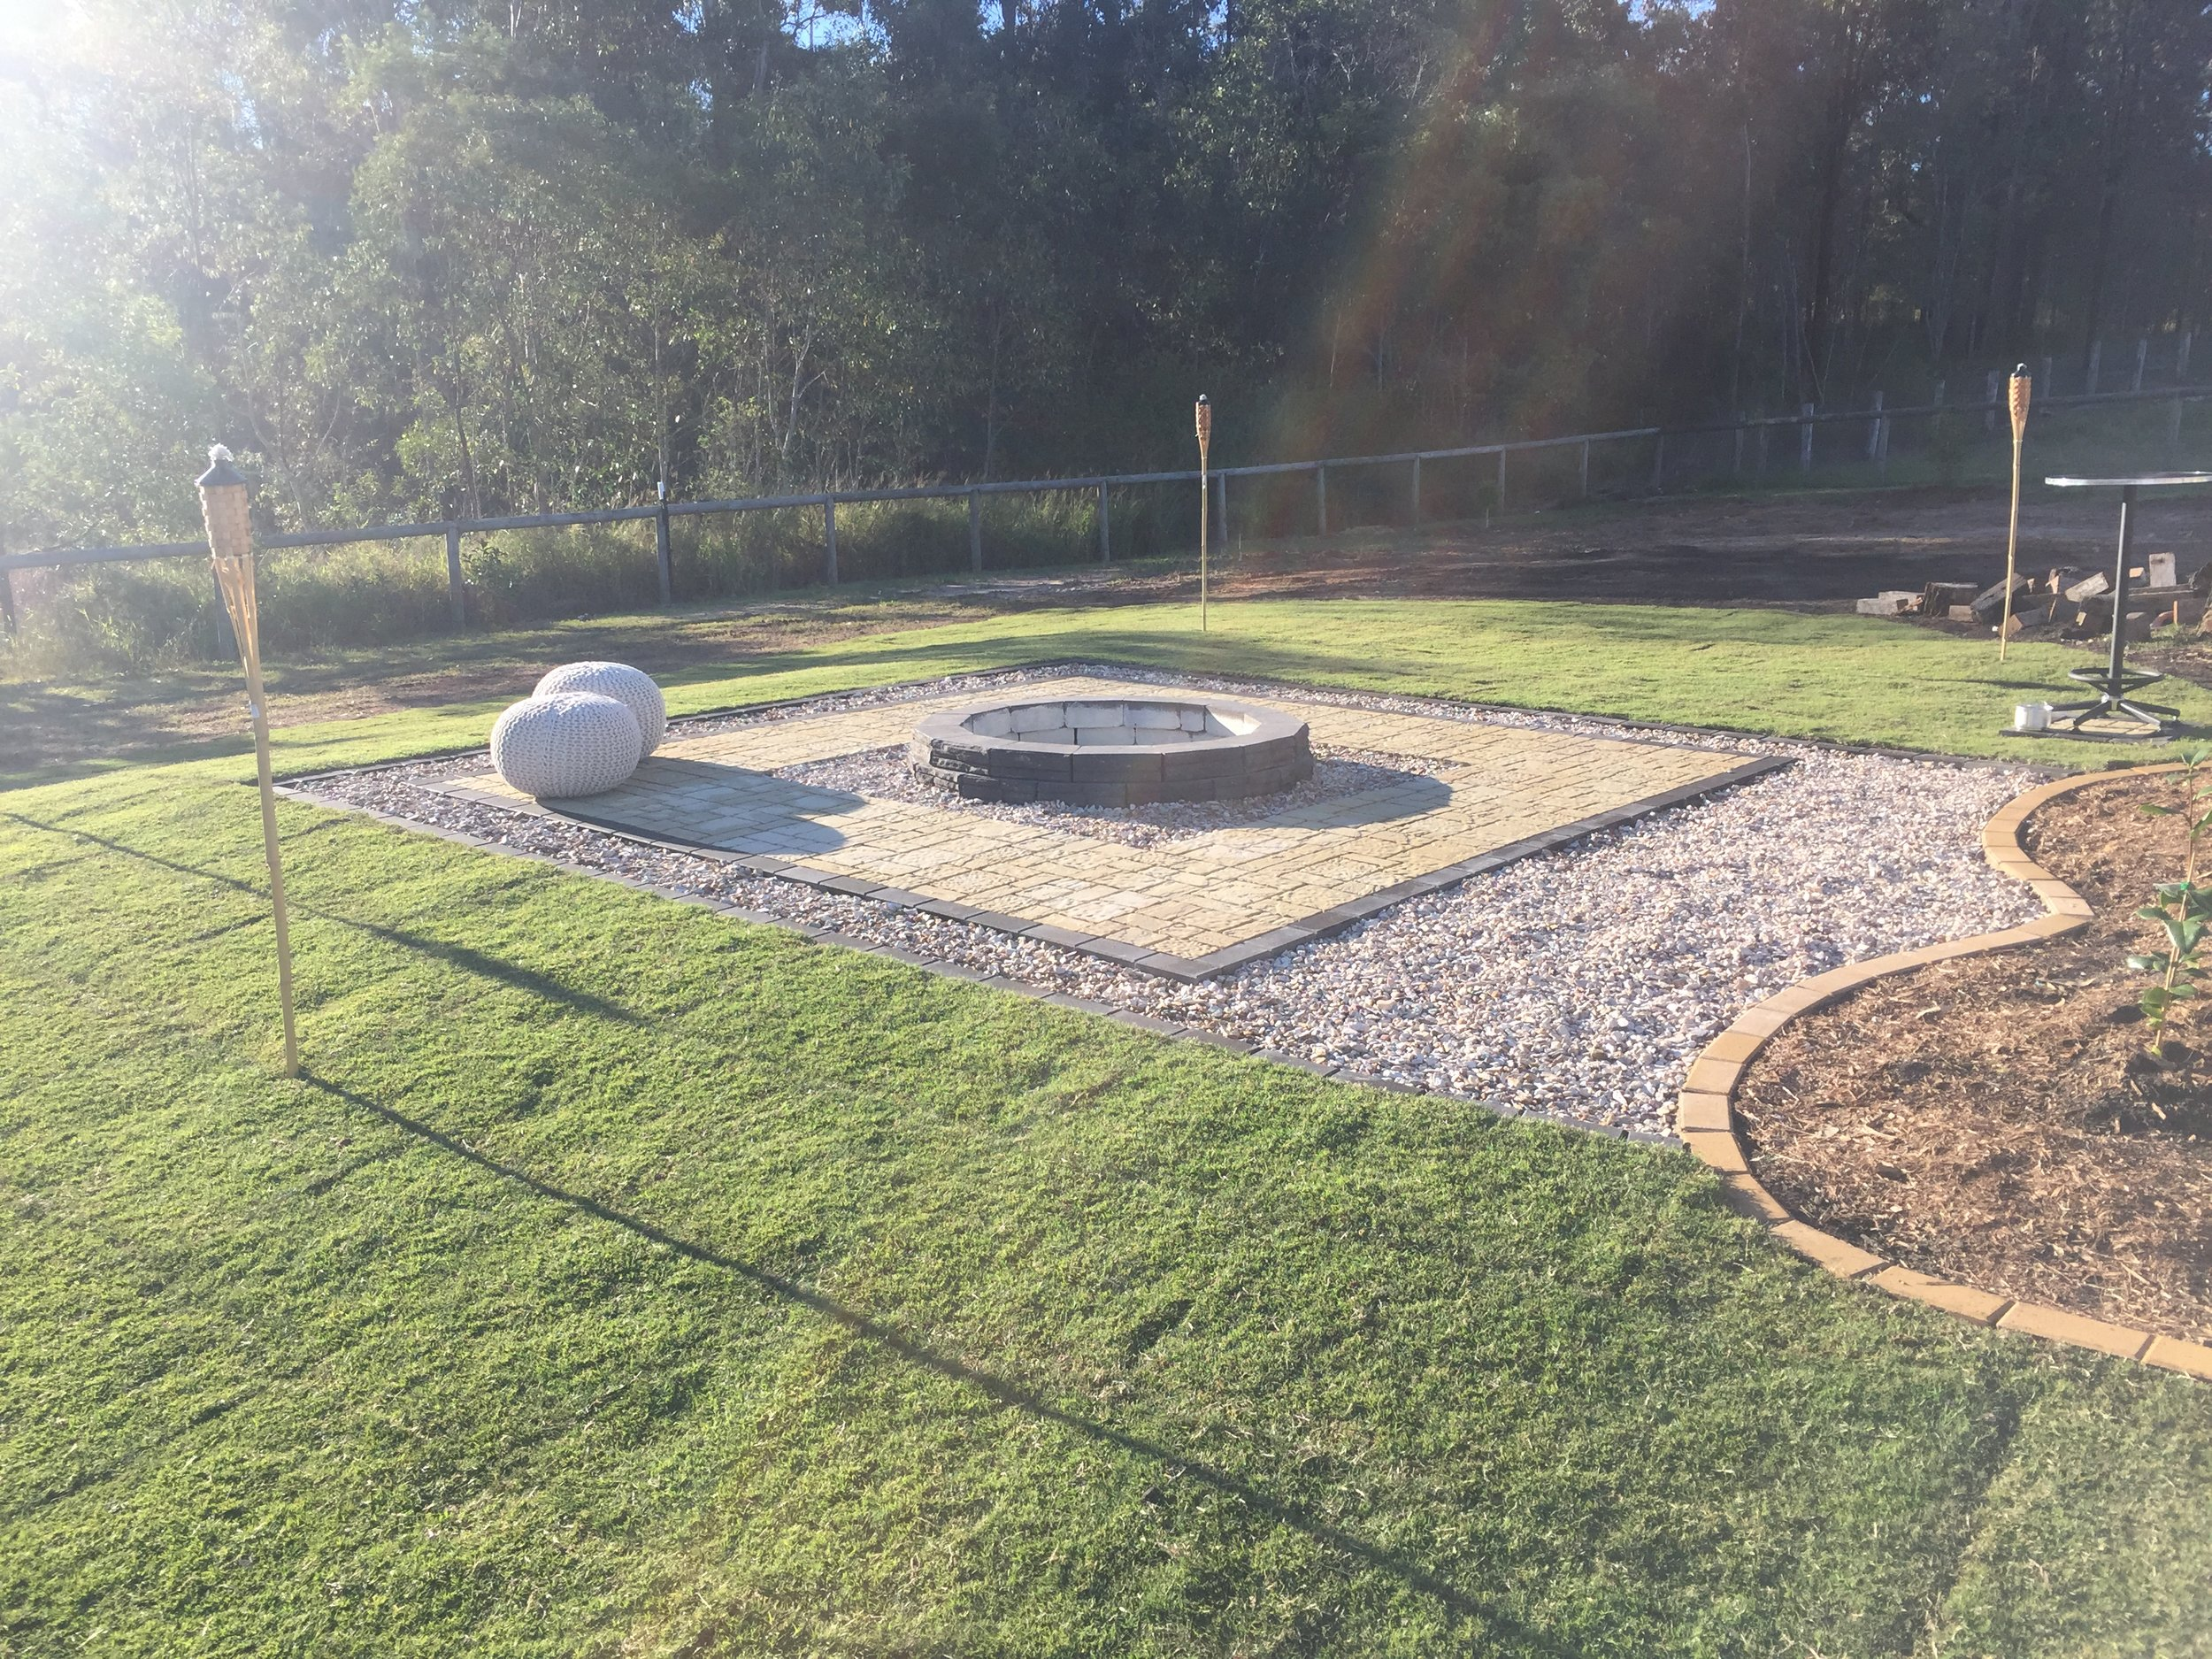 Landscaping Services - Paths and Driveways ✔️ Retaining Walls (Concrete Sleepers, Block, Stone or Timber) ✔️ Decking and Entertainment Areas ✔️ Concreting ✔️ Water Features / Pool Waterfalls ✔️ Fencing ✔️ Gardens / Soft Landscaping ✔️ Earthworks ✔️ Turfing ✔️ Paving